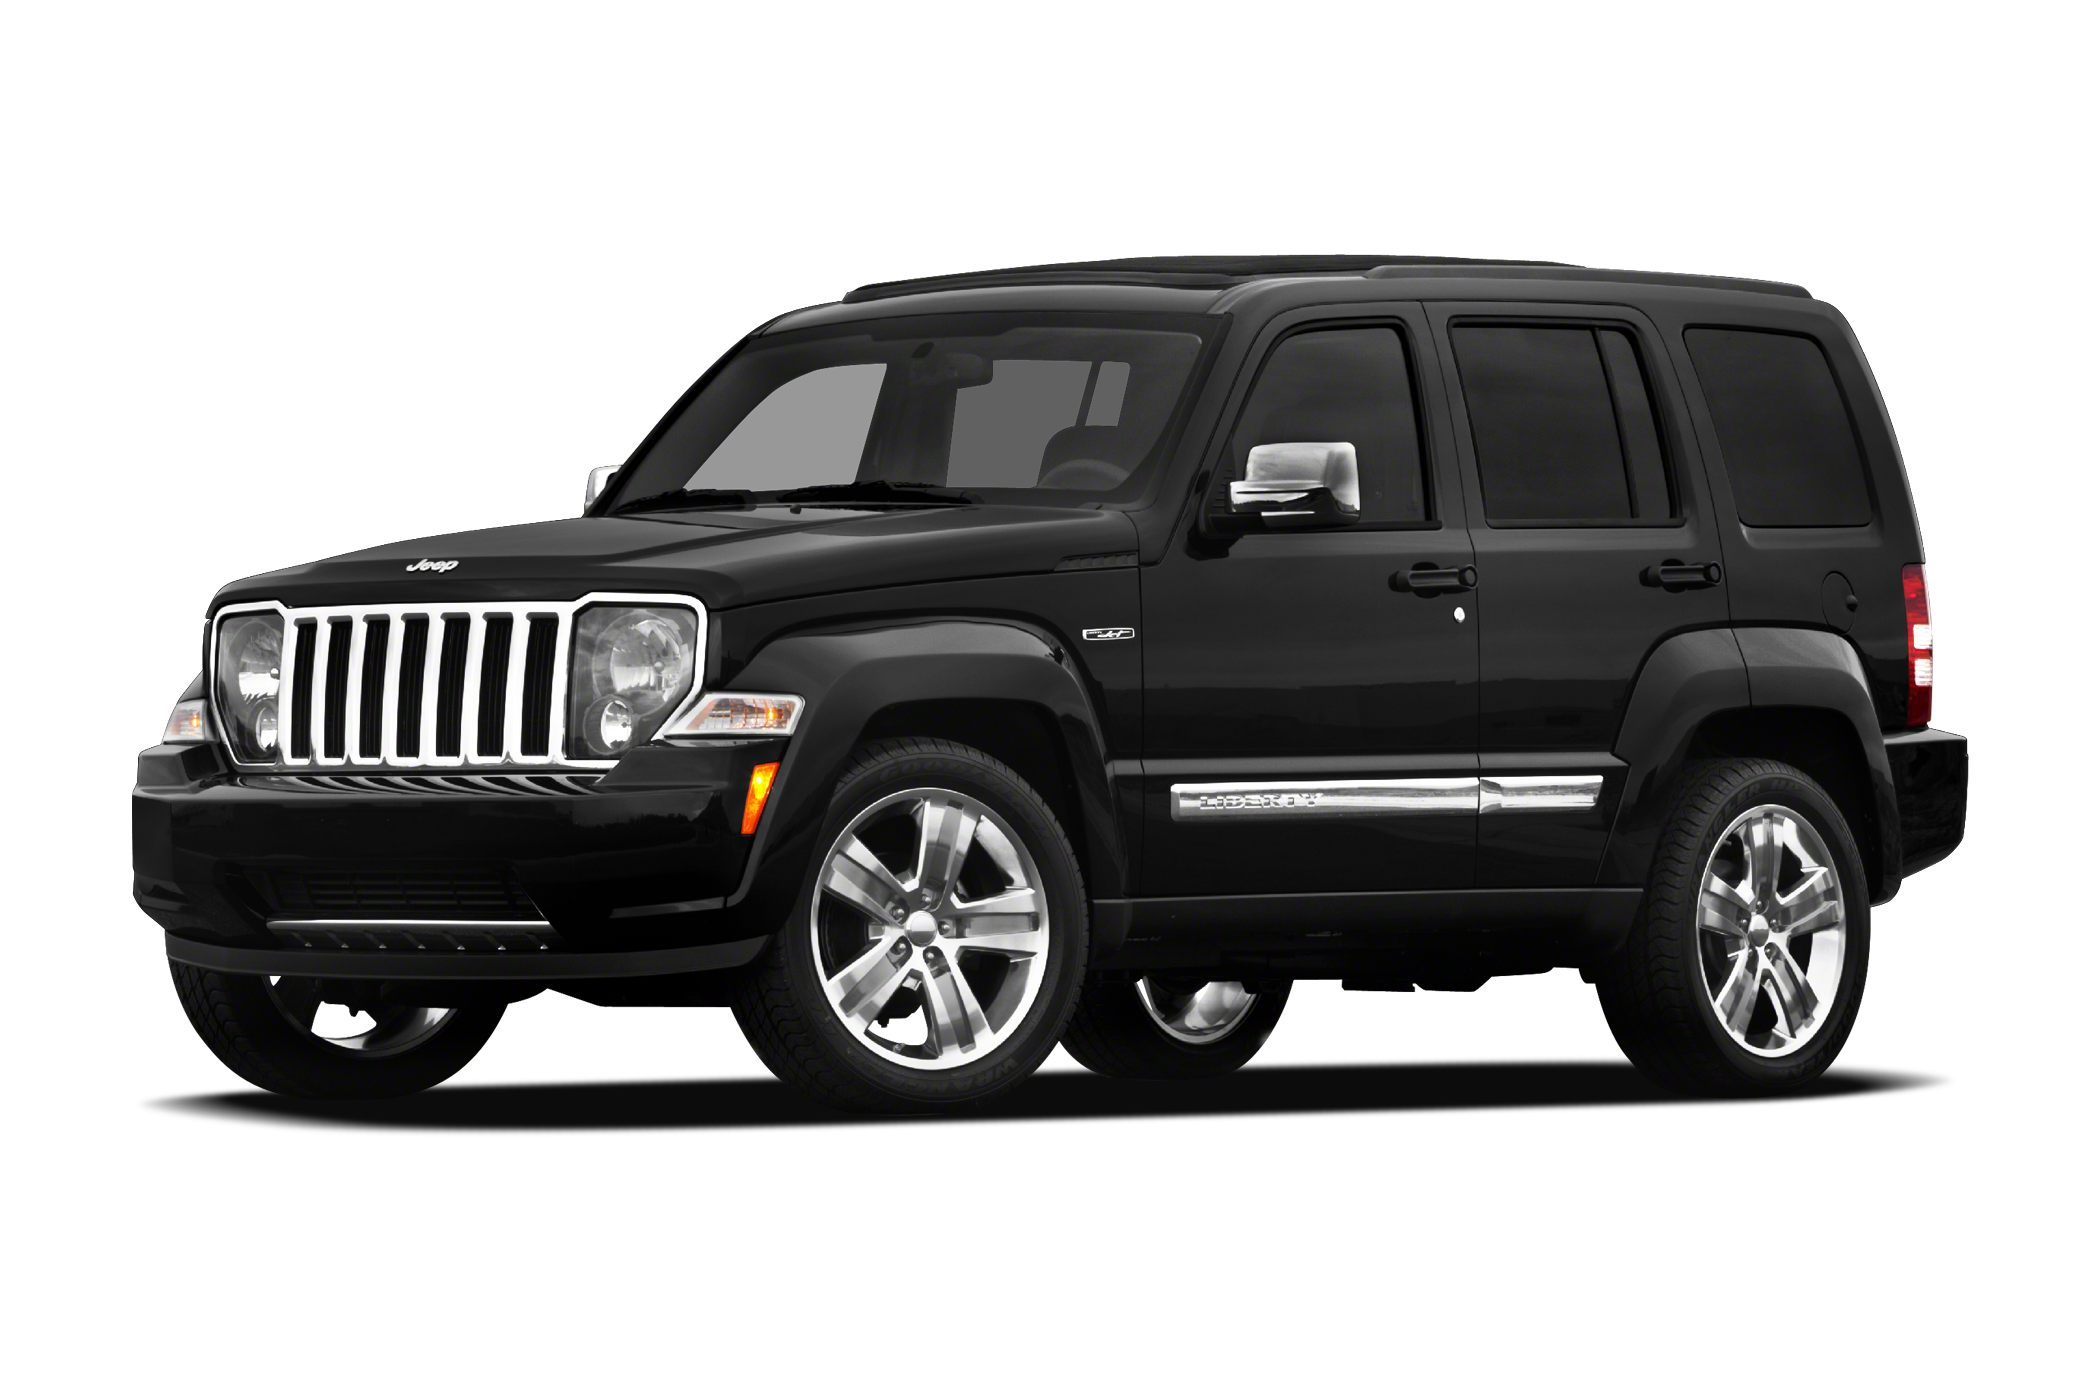 2012 Jeep Liberty Jet SUV for sale in Cincinnati for $22,450 with 54,336 miles.